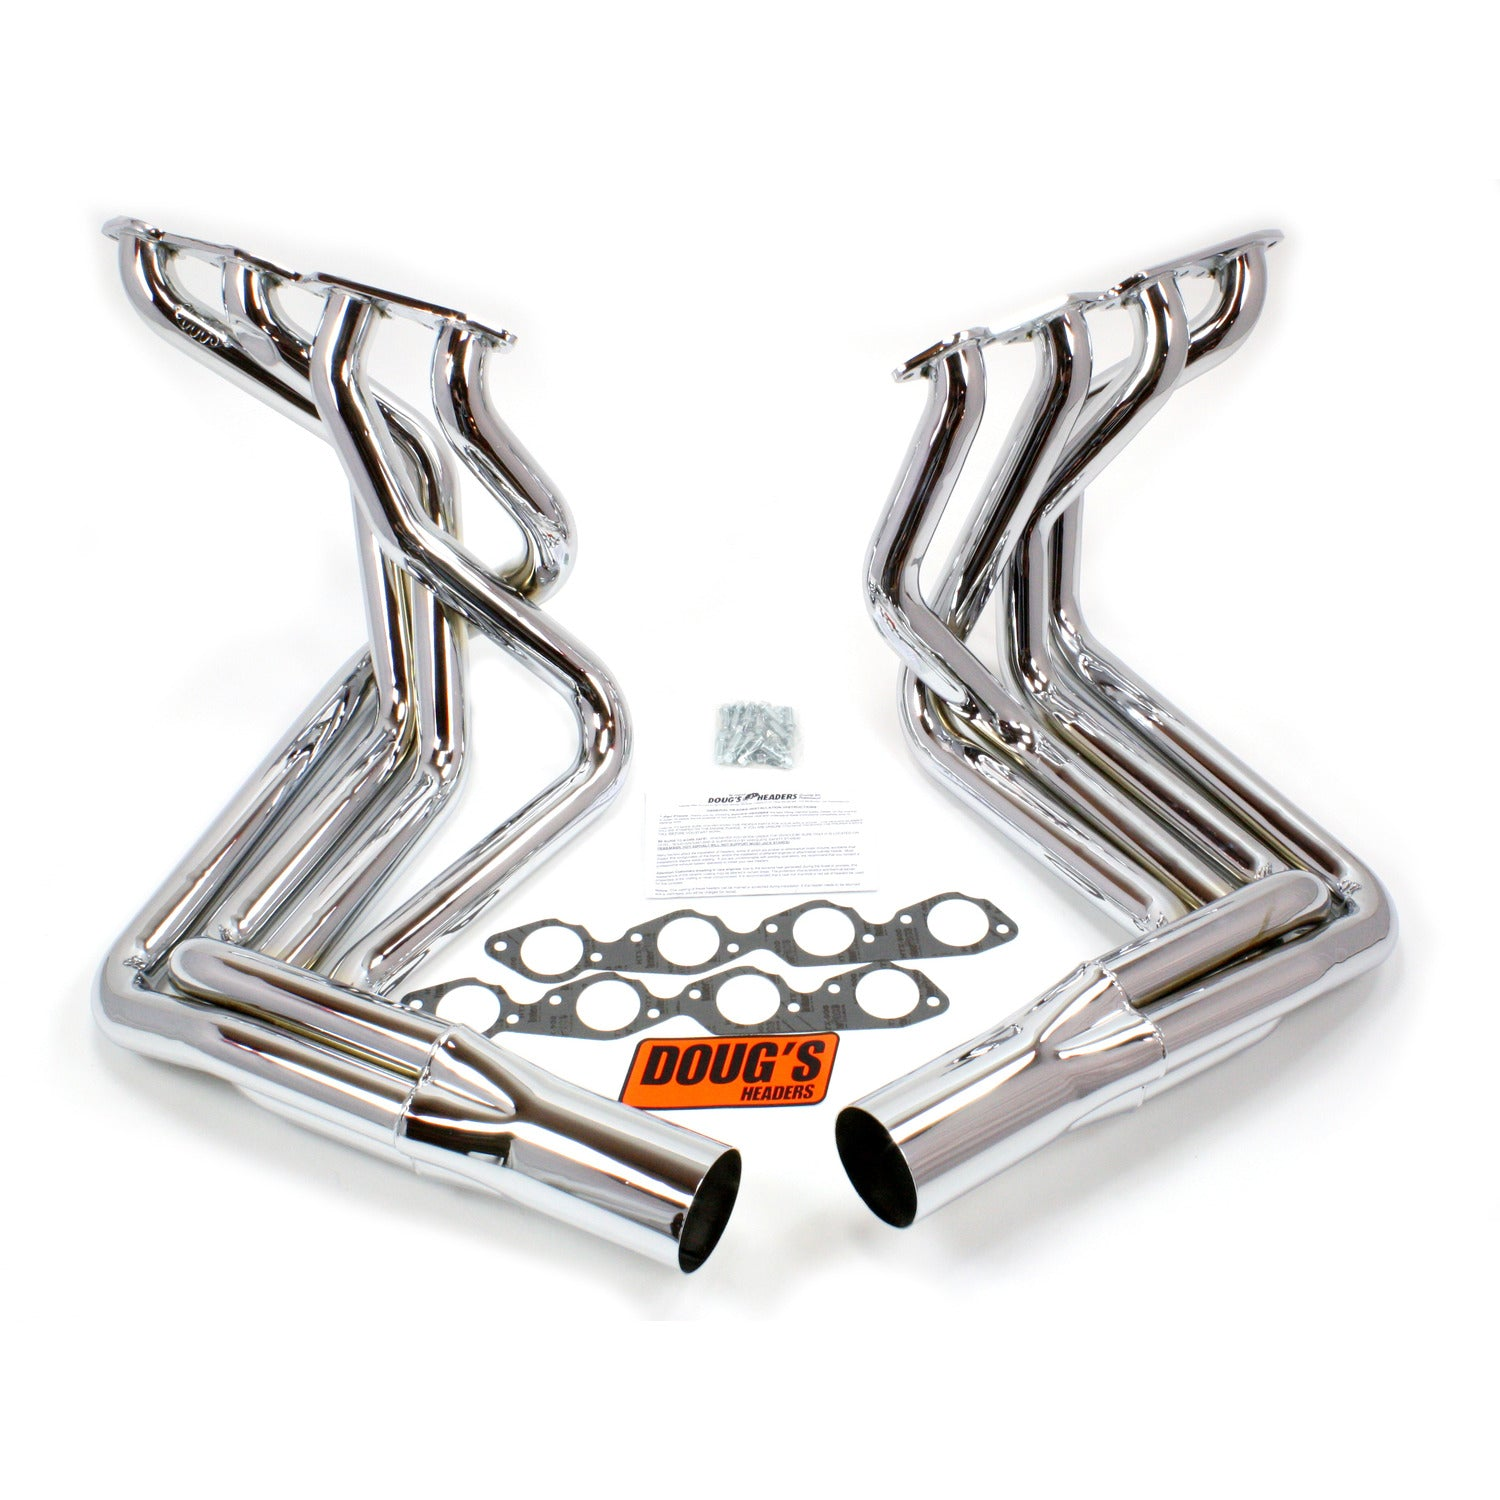 "Doug's Headers D381-C 2 1/8"" 4-Tube Full Length Header Chevrolet Corvette Big Block Chevrolet 63-82 Sidemount Chrome"